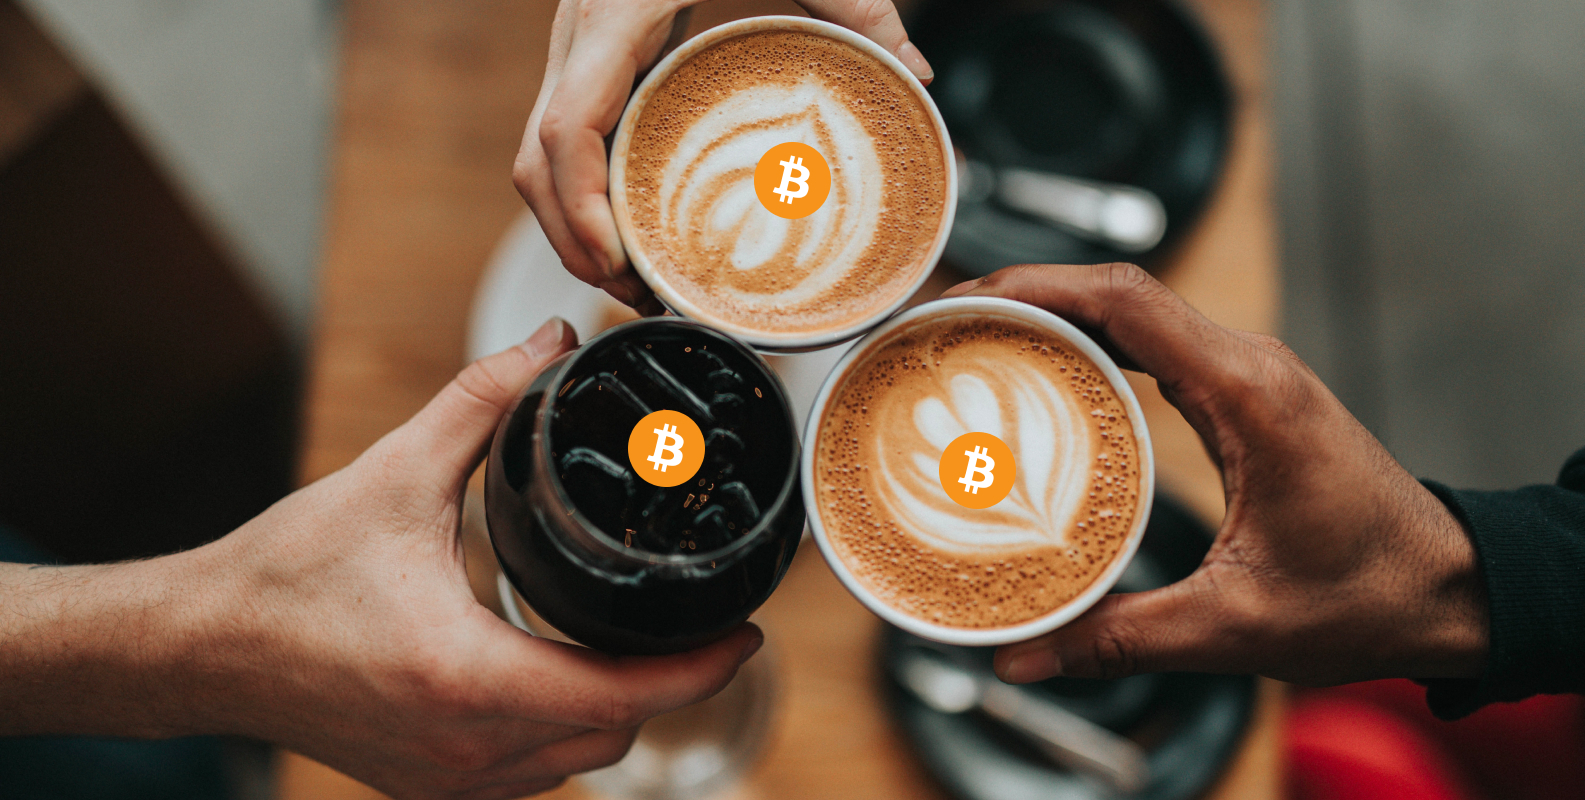 Study Finds White Respondents are More Aware of Bitcoin Compared to Black and Hispanic Respondents